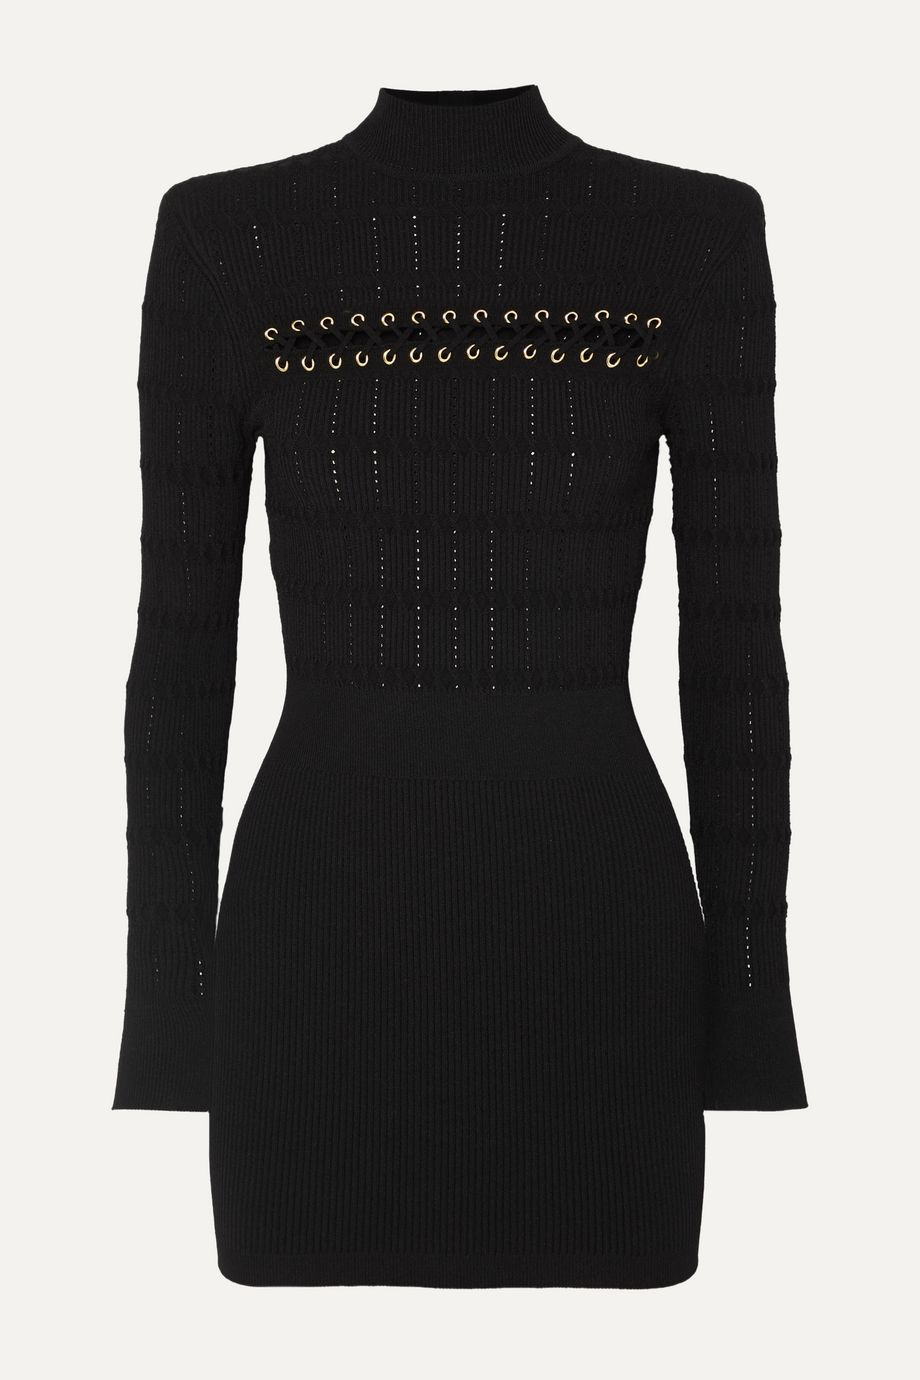 Balmain Lace-up ribbed pointelle-knit mini dress